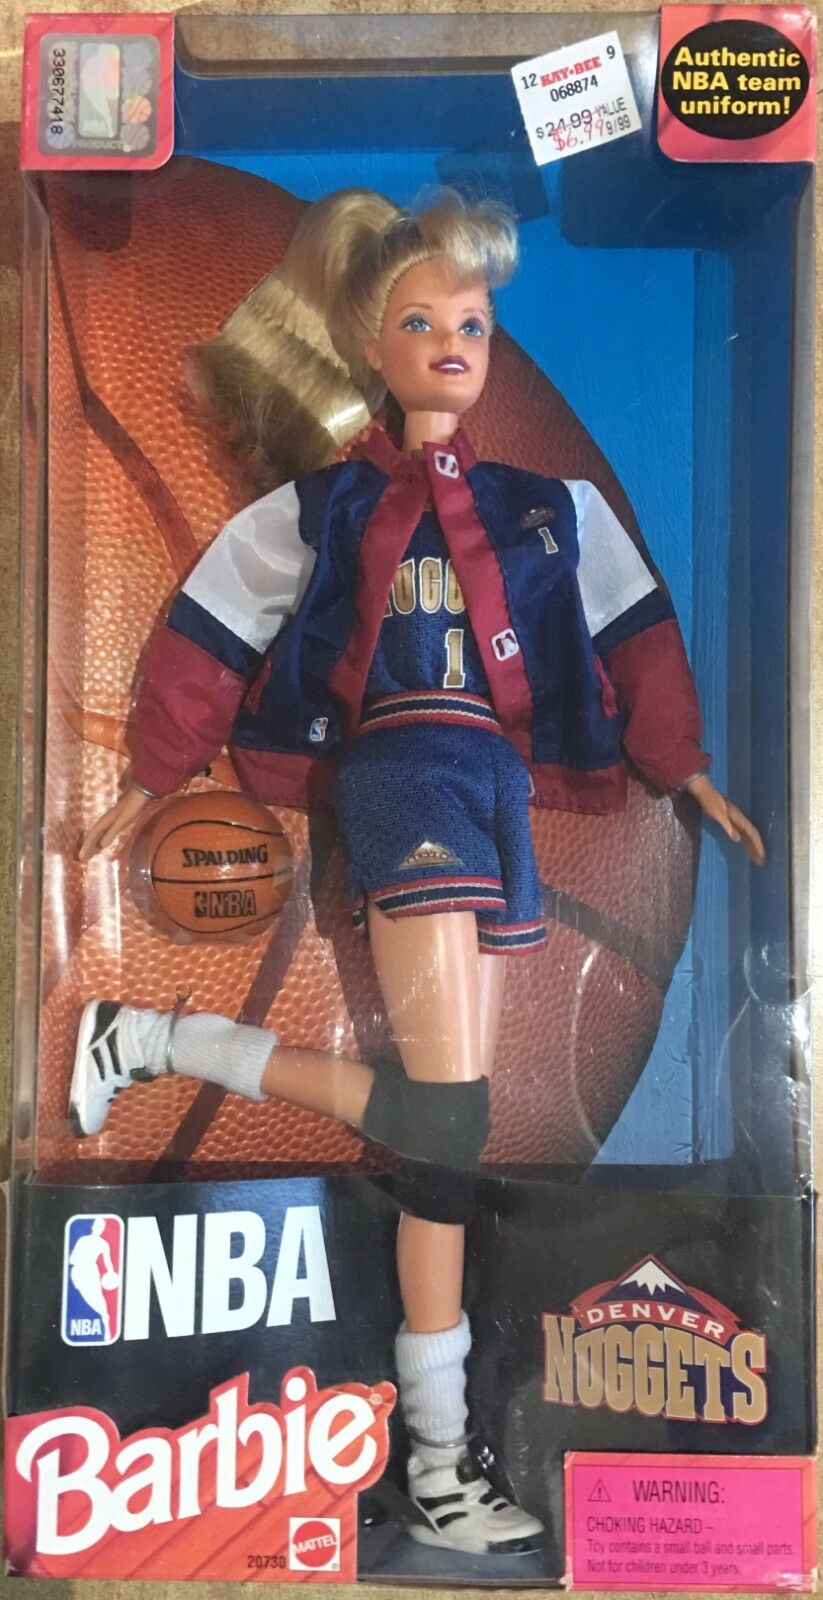 Barbie Mattel NBA Uniform Authentic Original Uniform NBA SCEGLI b7e11f